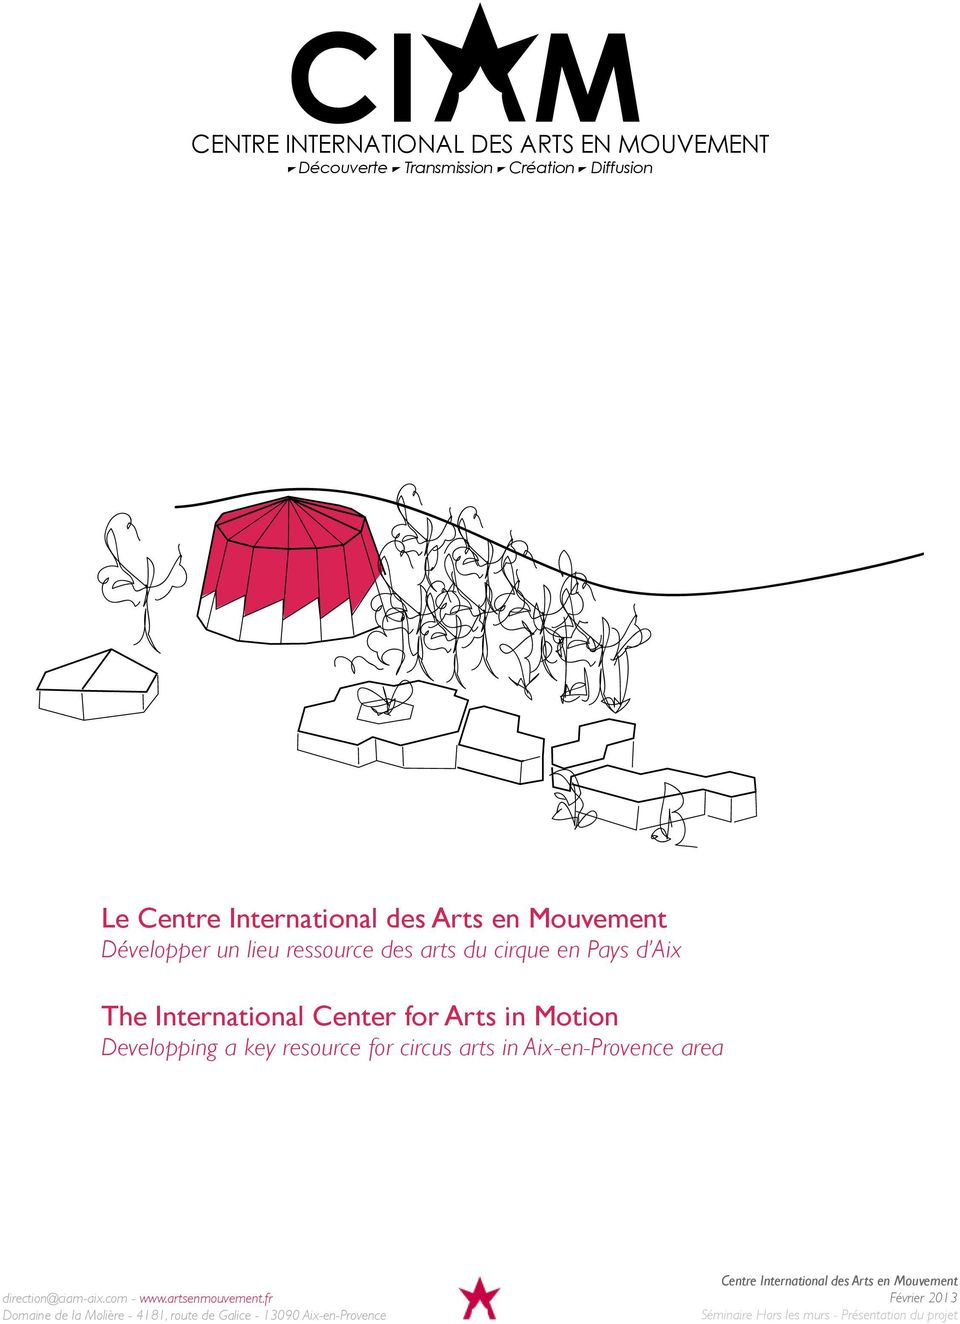 Arts in Motion Developping a key resource for circus arts in Aix-en-Provence area